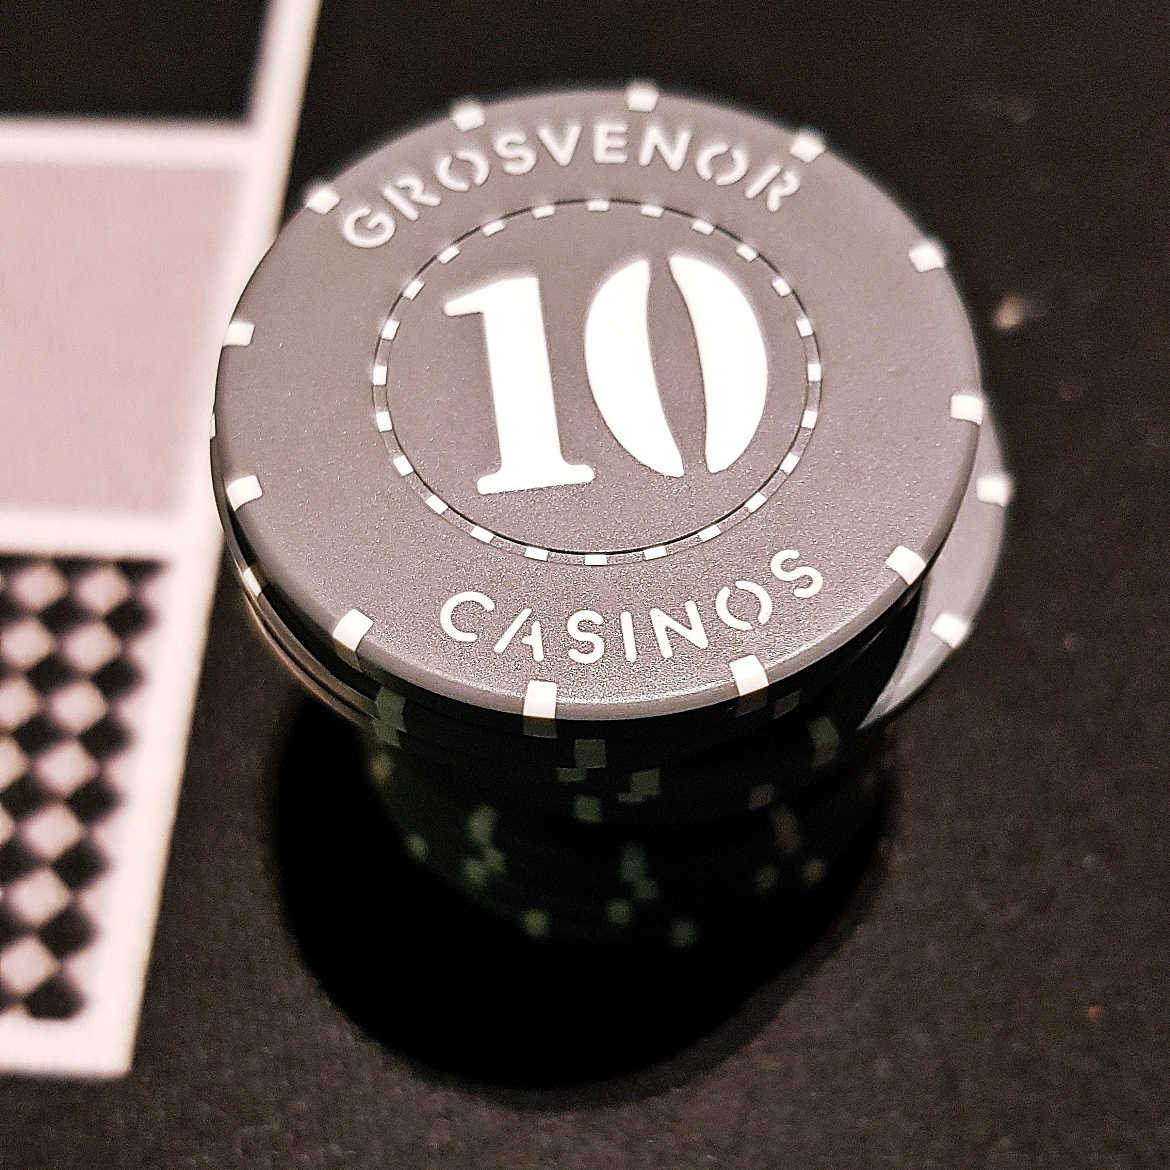 Stack of casino chips - Grosvenor Casino Leeds review by BeckyBecky Blogs